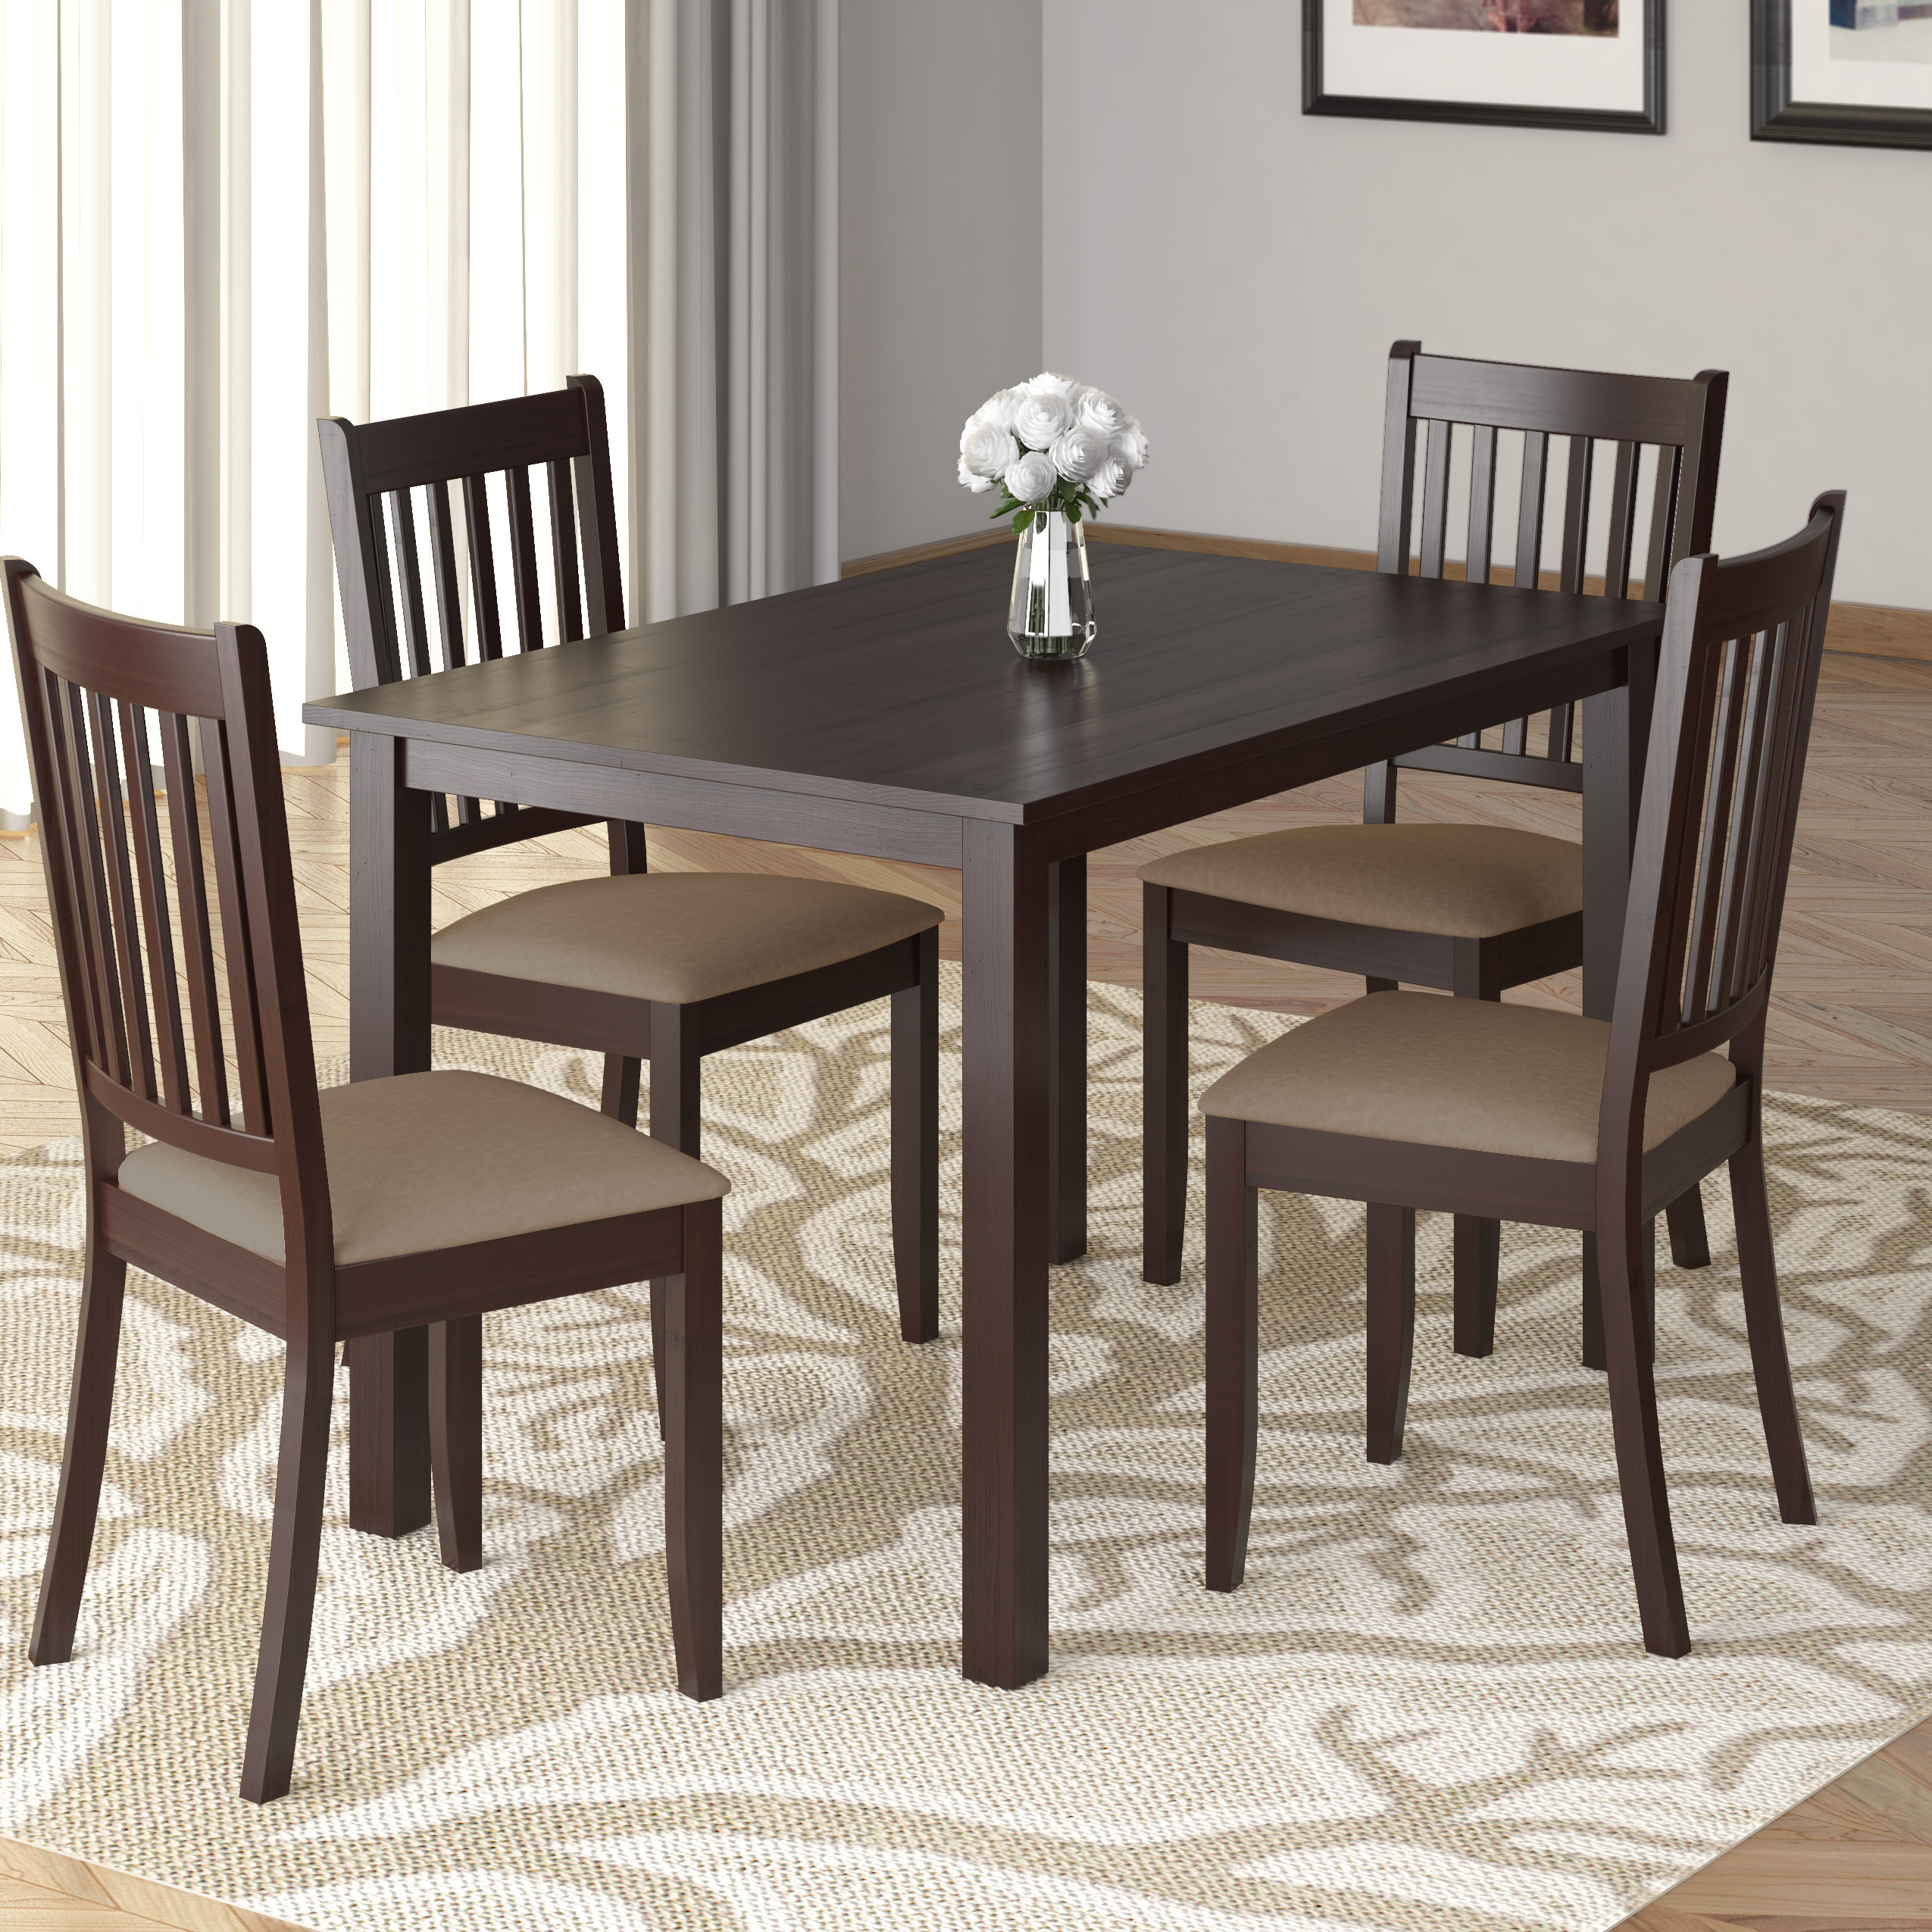 Current Atwood Transitional Square Dining Tables Inside Corliving Atwood 5Pc Dining Set, With Beige Microfiber Seats (View 13 of 25)